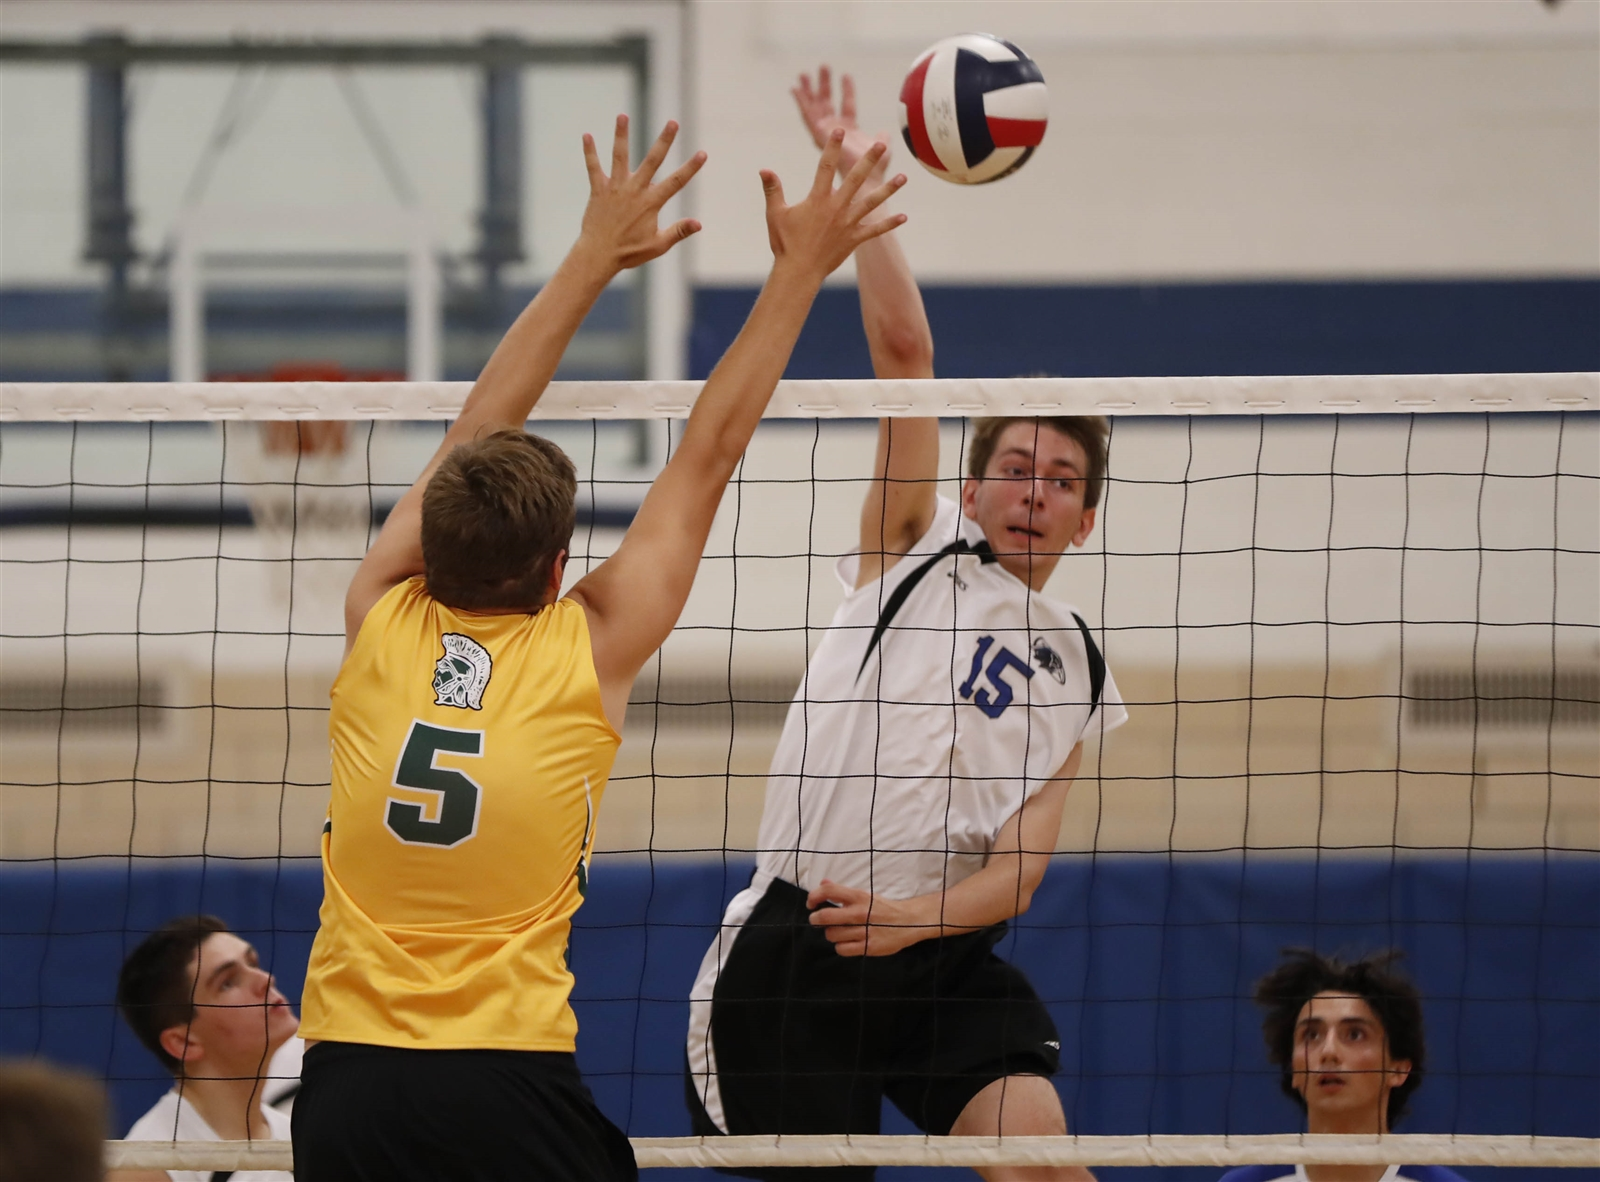 Dylan Tylock and Frontier head to St. Francis in one of several quality boys volleyball matches Wednesday. (Harry Scull Jr./Buffalo News)